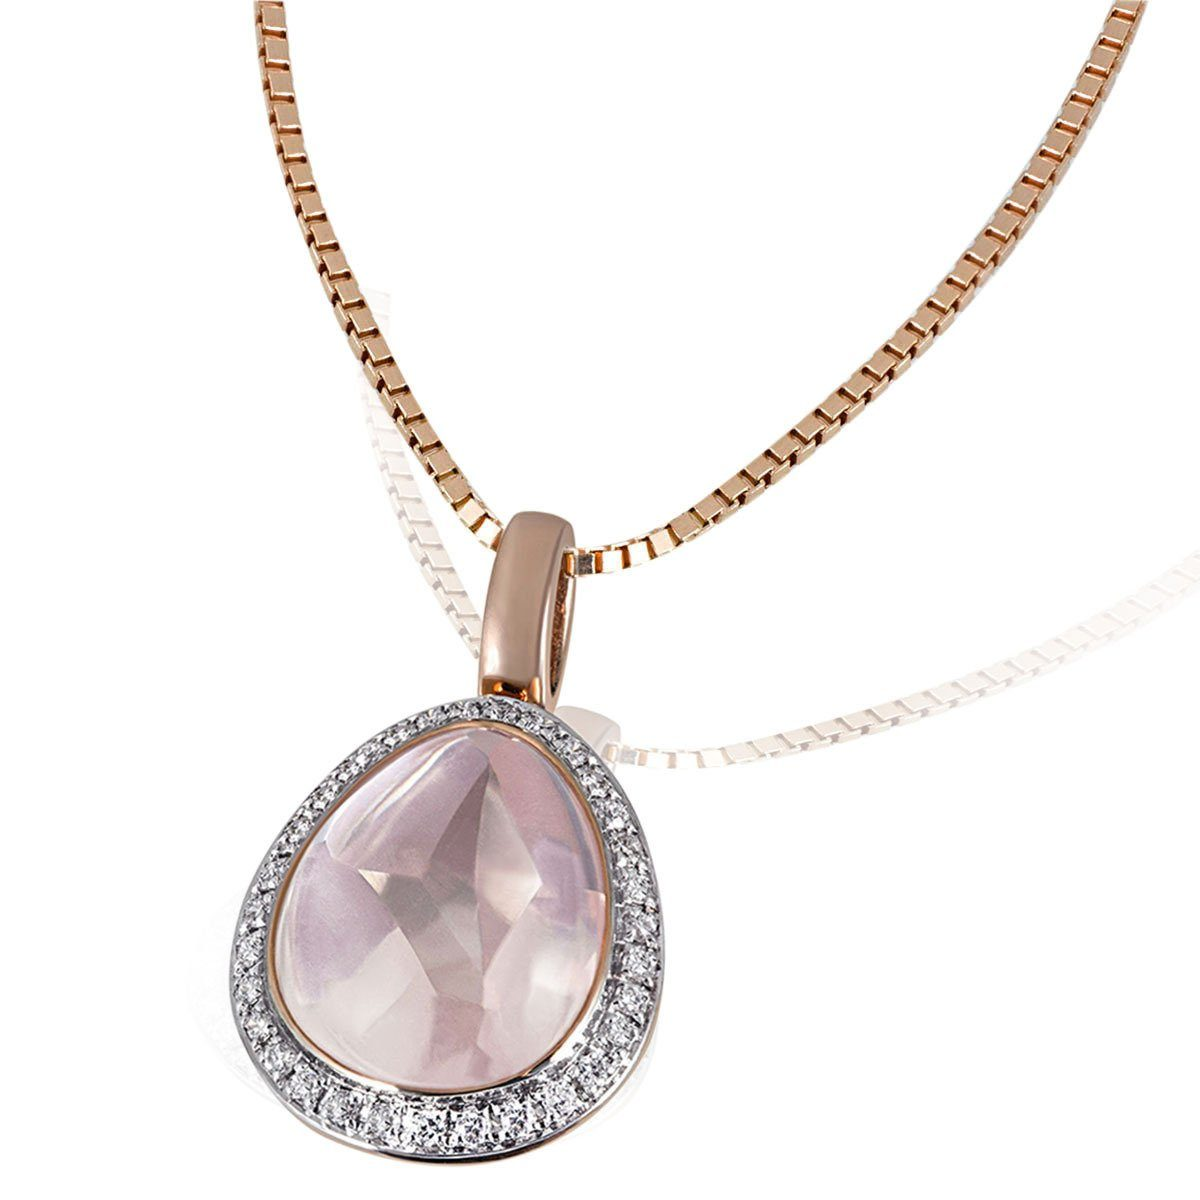 goldmaid Collier 585/- Rotgold 1 Rosenquarz 31 Diamanten 0,16 ct.